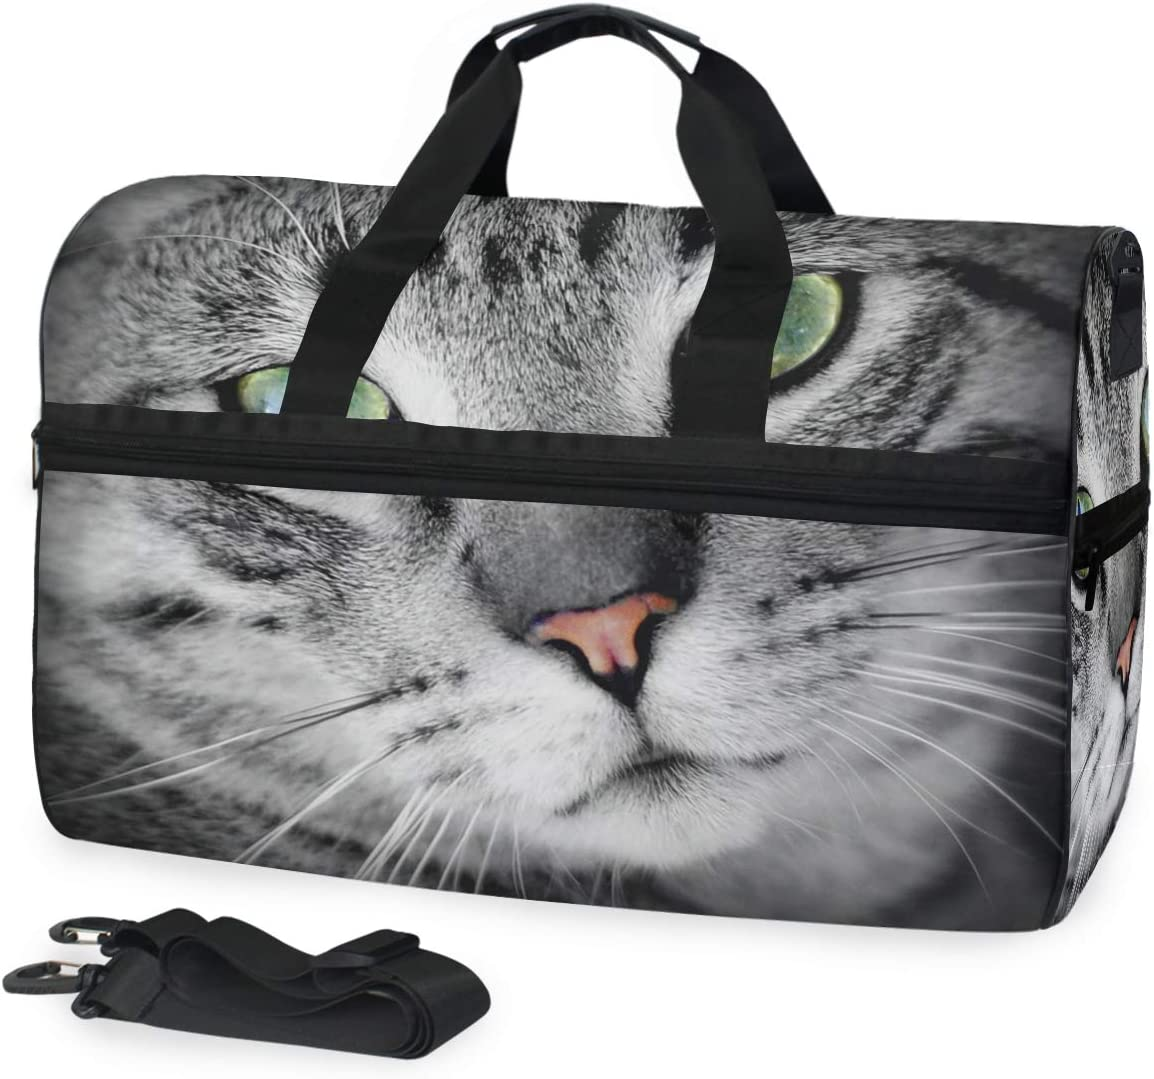 AHOMY Cat Sports Gym Bag with Shoes Compartment Travel Duffel Bag